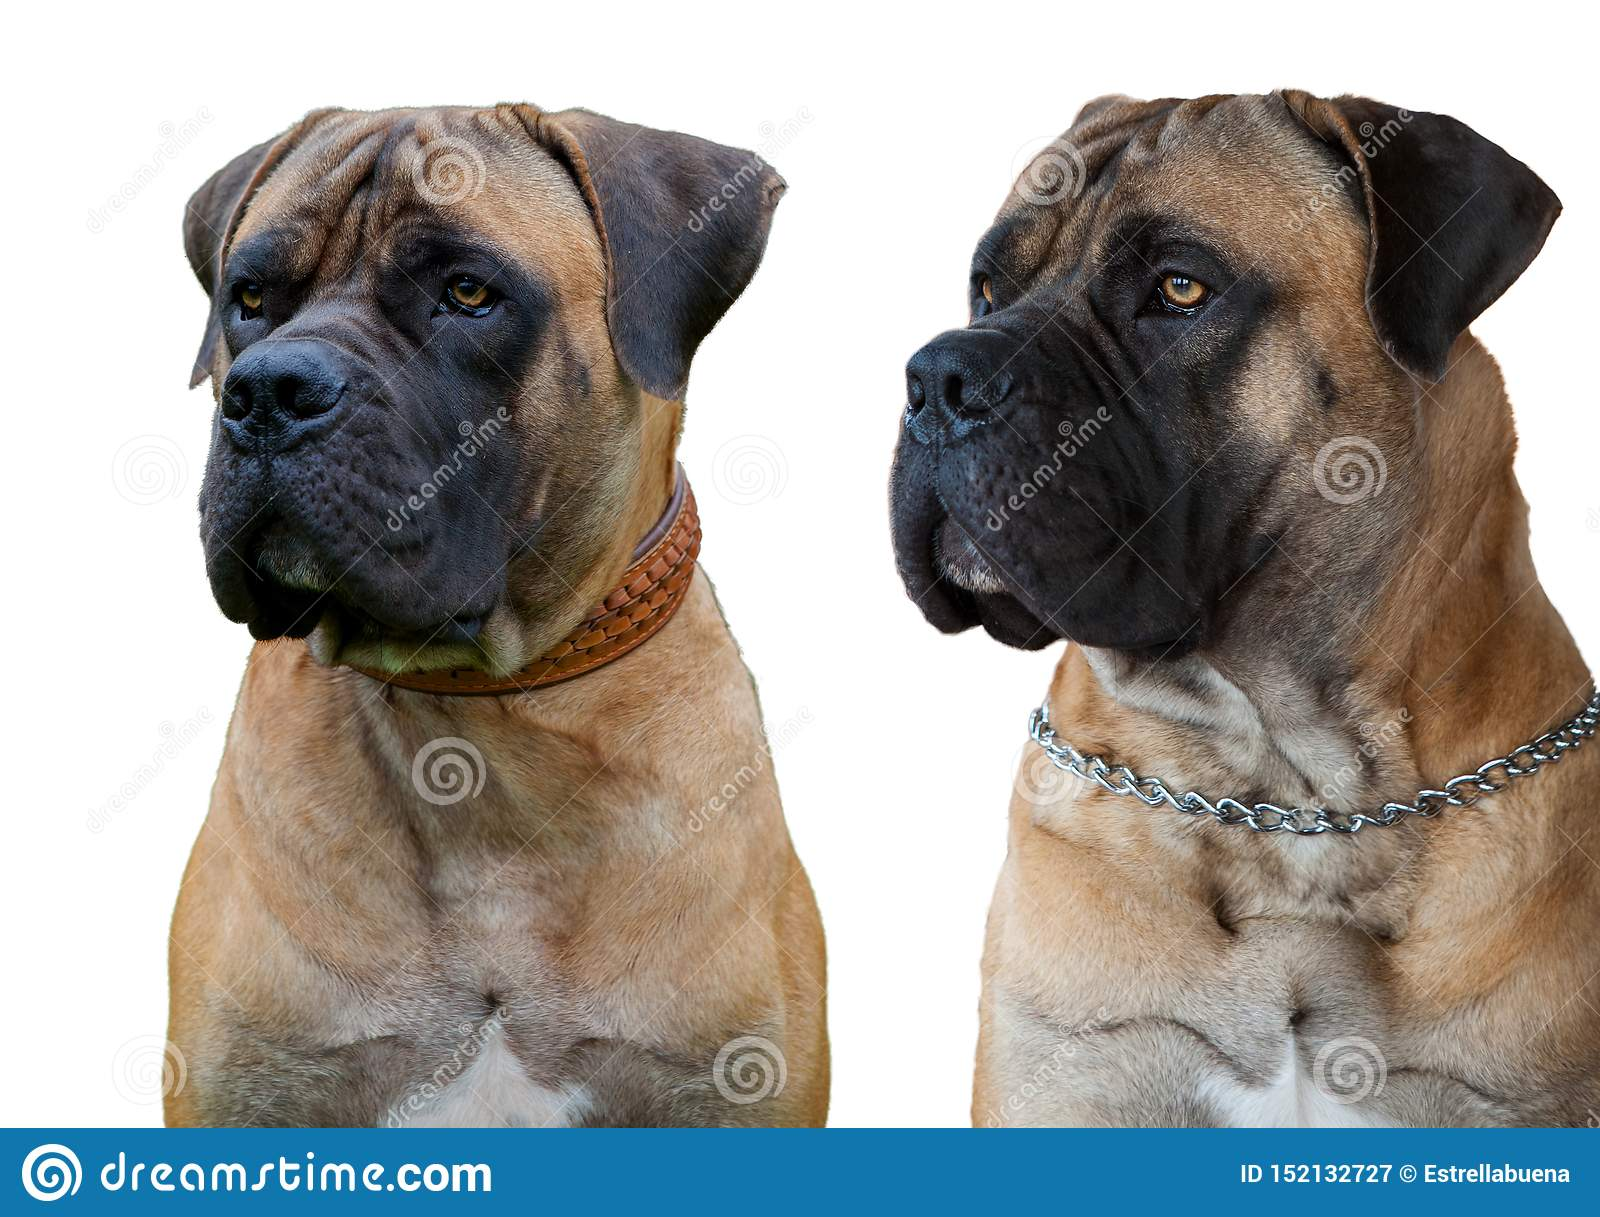 A Rare Breed Of Dog - The Boerboel South African Mastiff